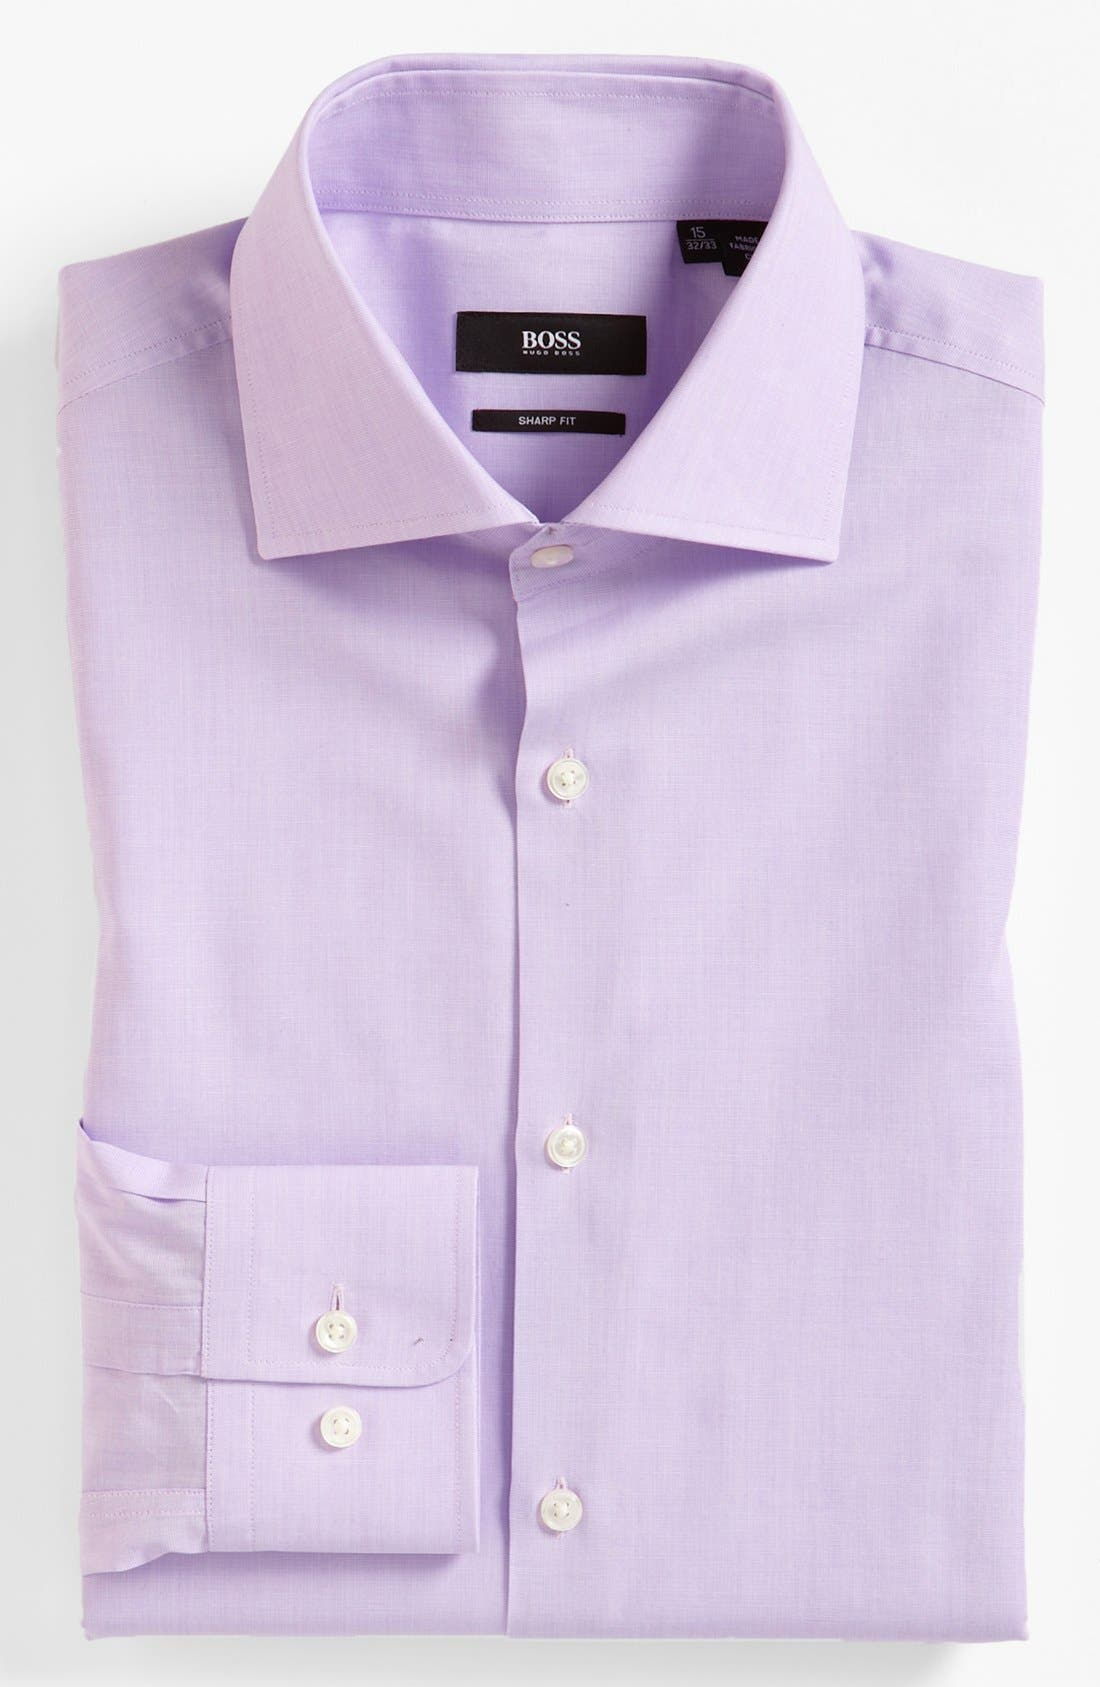 Alternate Image 1 Selected - BOSS 'Miles' Sharp Fit End-on-End Dress Shirt